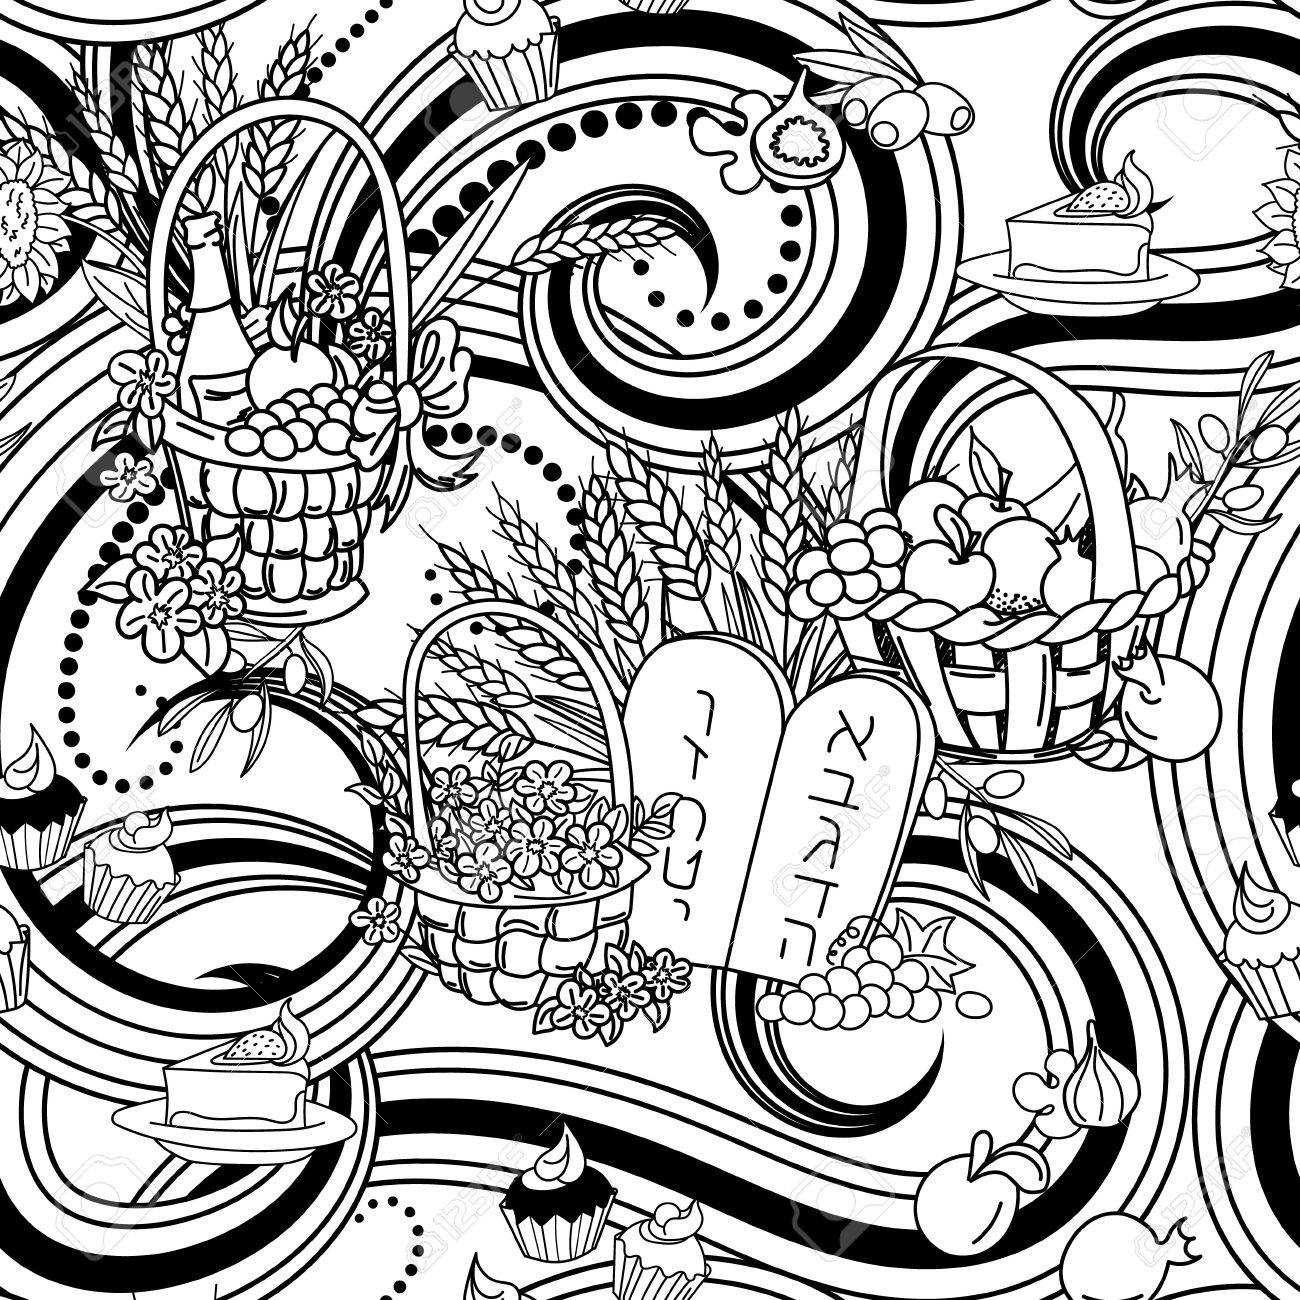 torah tots coloring pages Download-shavuot seamless pattern background shavuot symbols black and white coloring page vector illustration 17-q